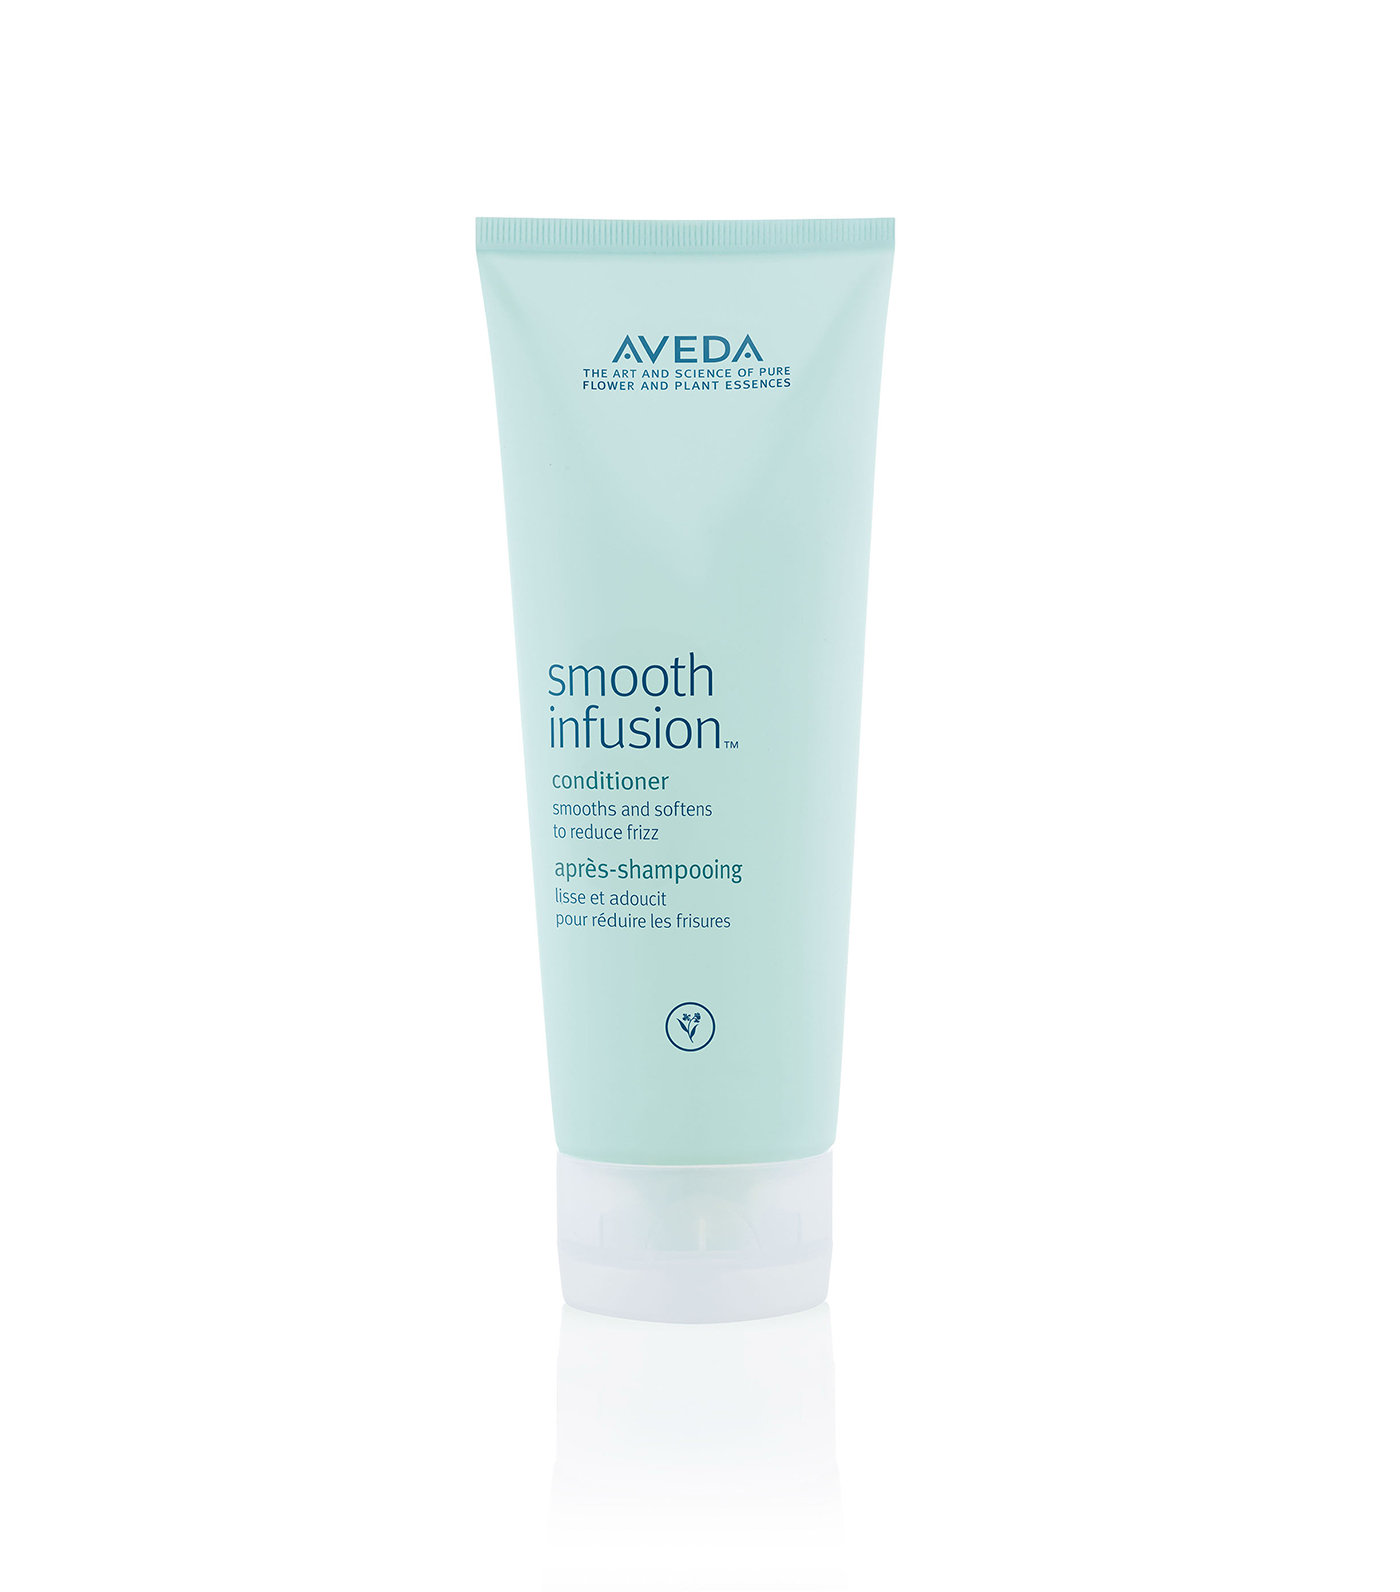 Smooth Infusion™ Conditioner